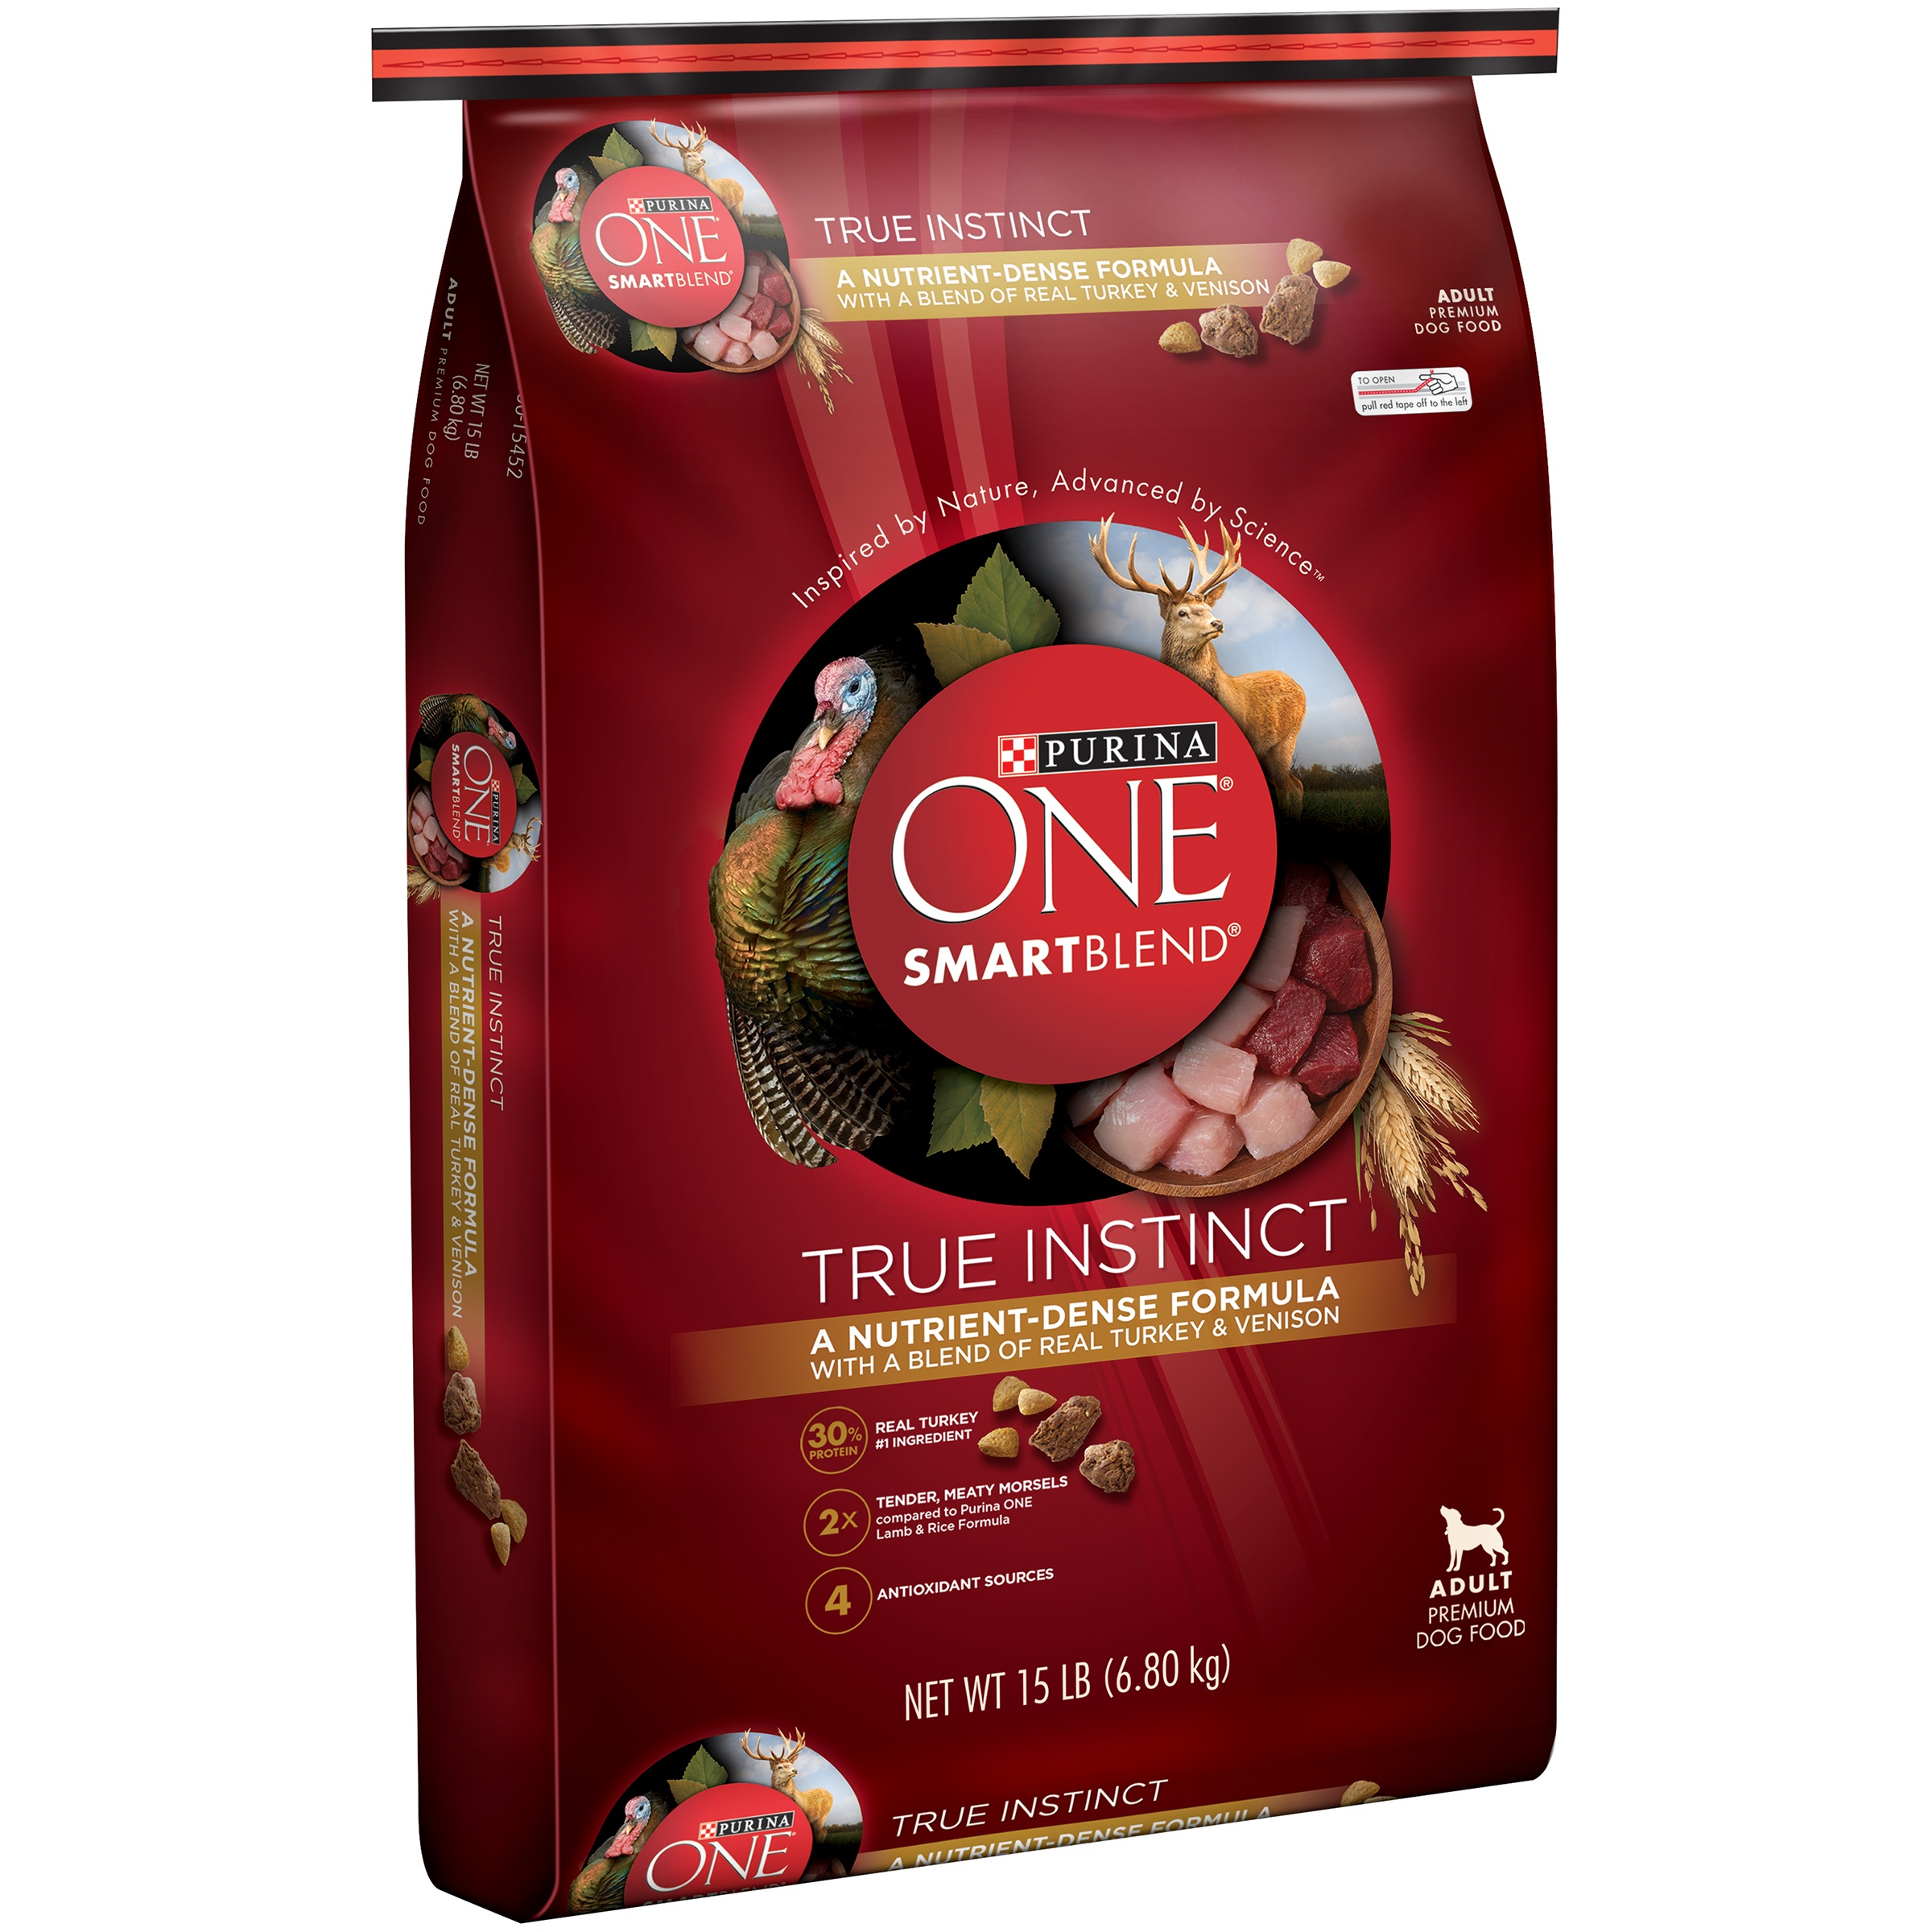 Purina ONE SmartBlend True Instinct with Real Turkey & Venison Adult Premium Dog Food 15 lb. Bag